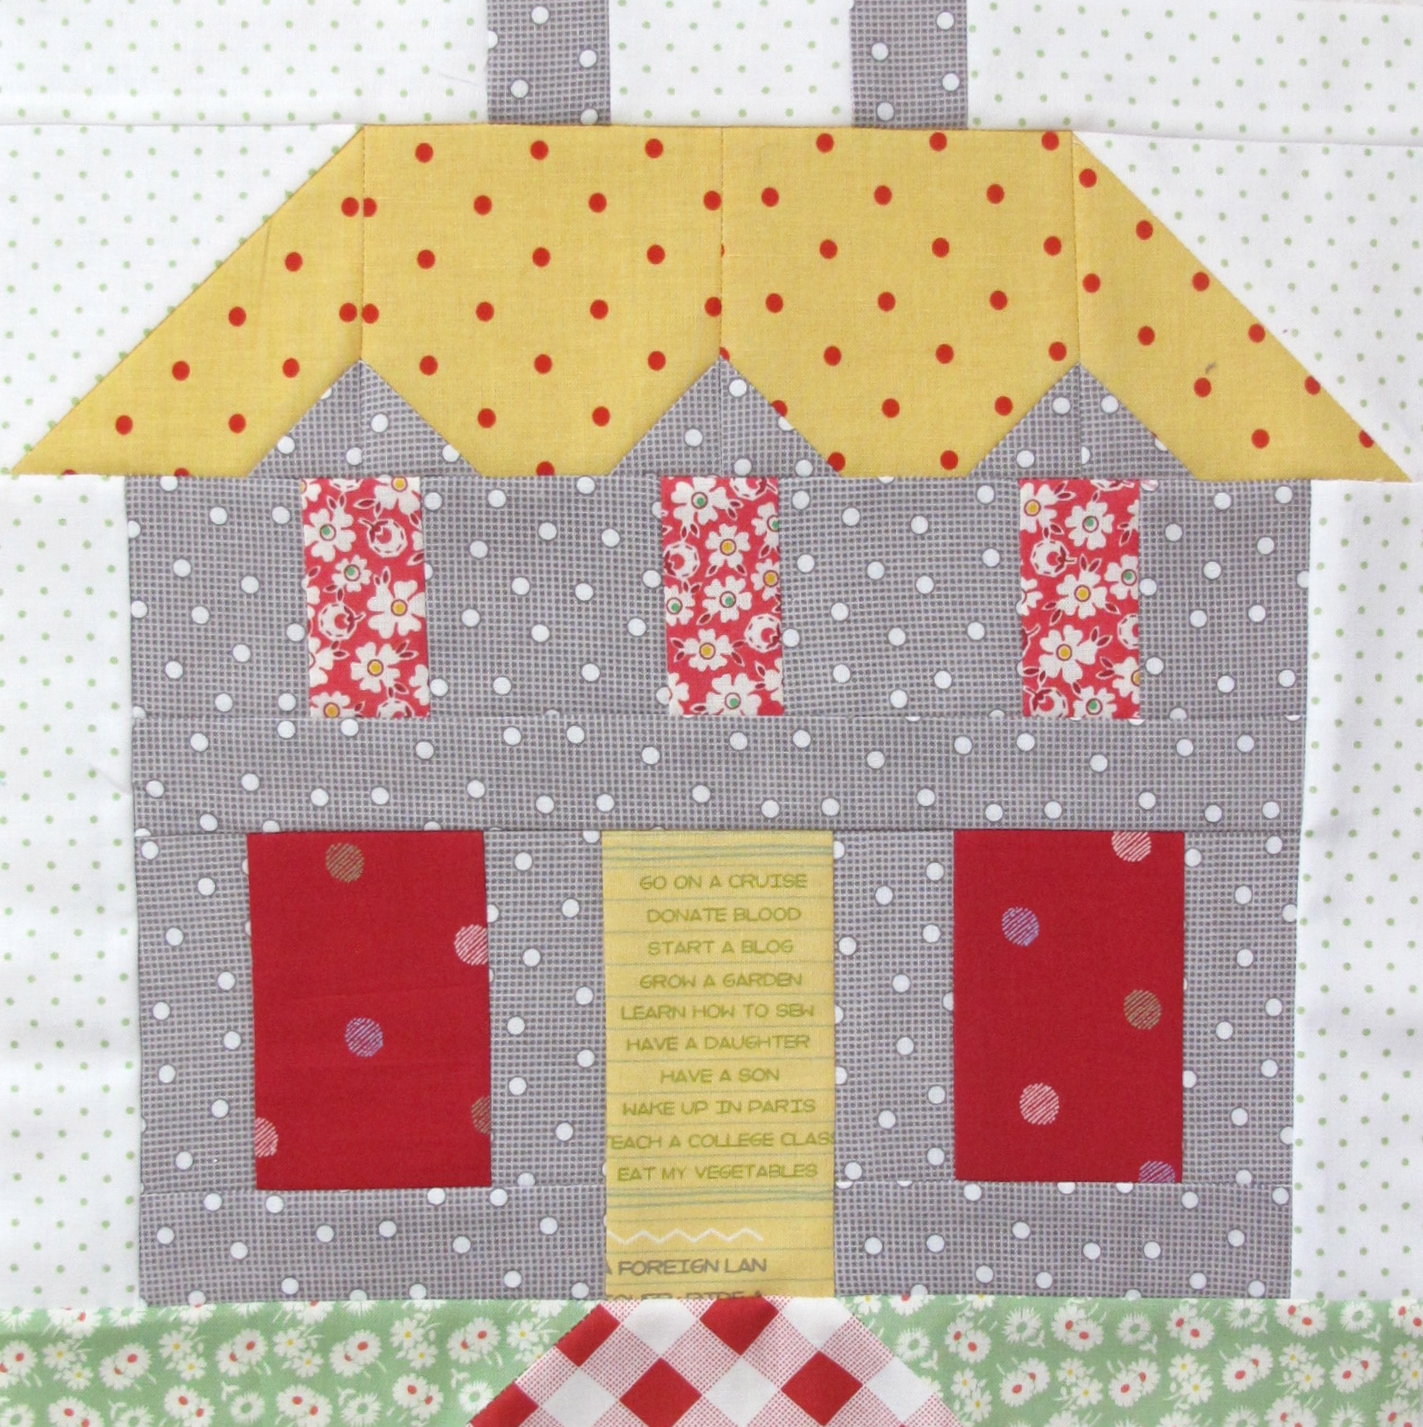 Quilting Patterns For Houses : Bee In My Bonnet: My Home Sweet Home Quilt Block Pattern - In Quiltmakers Magazine 100 Blocks!!!